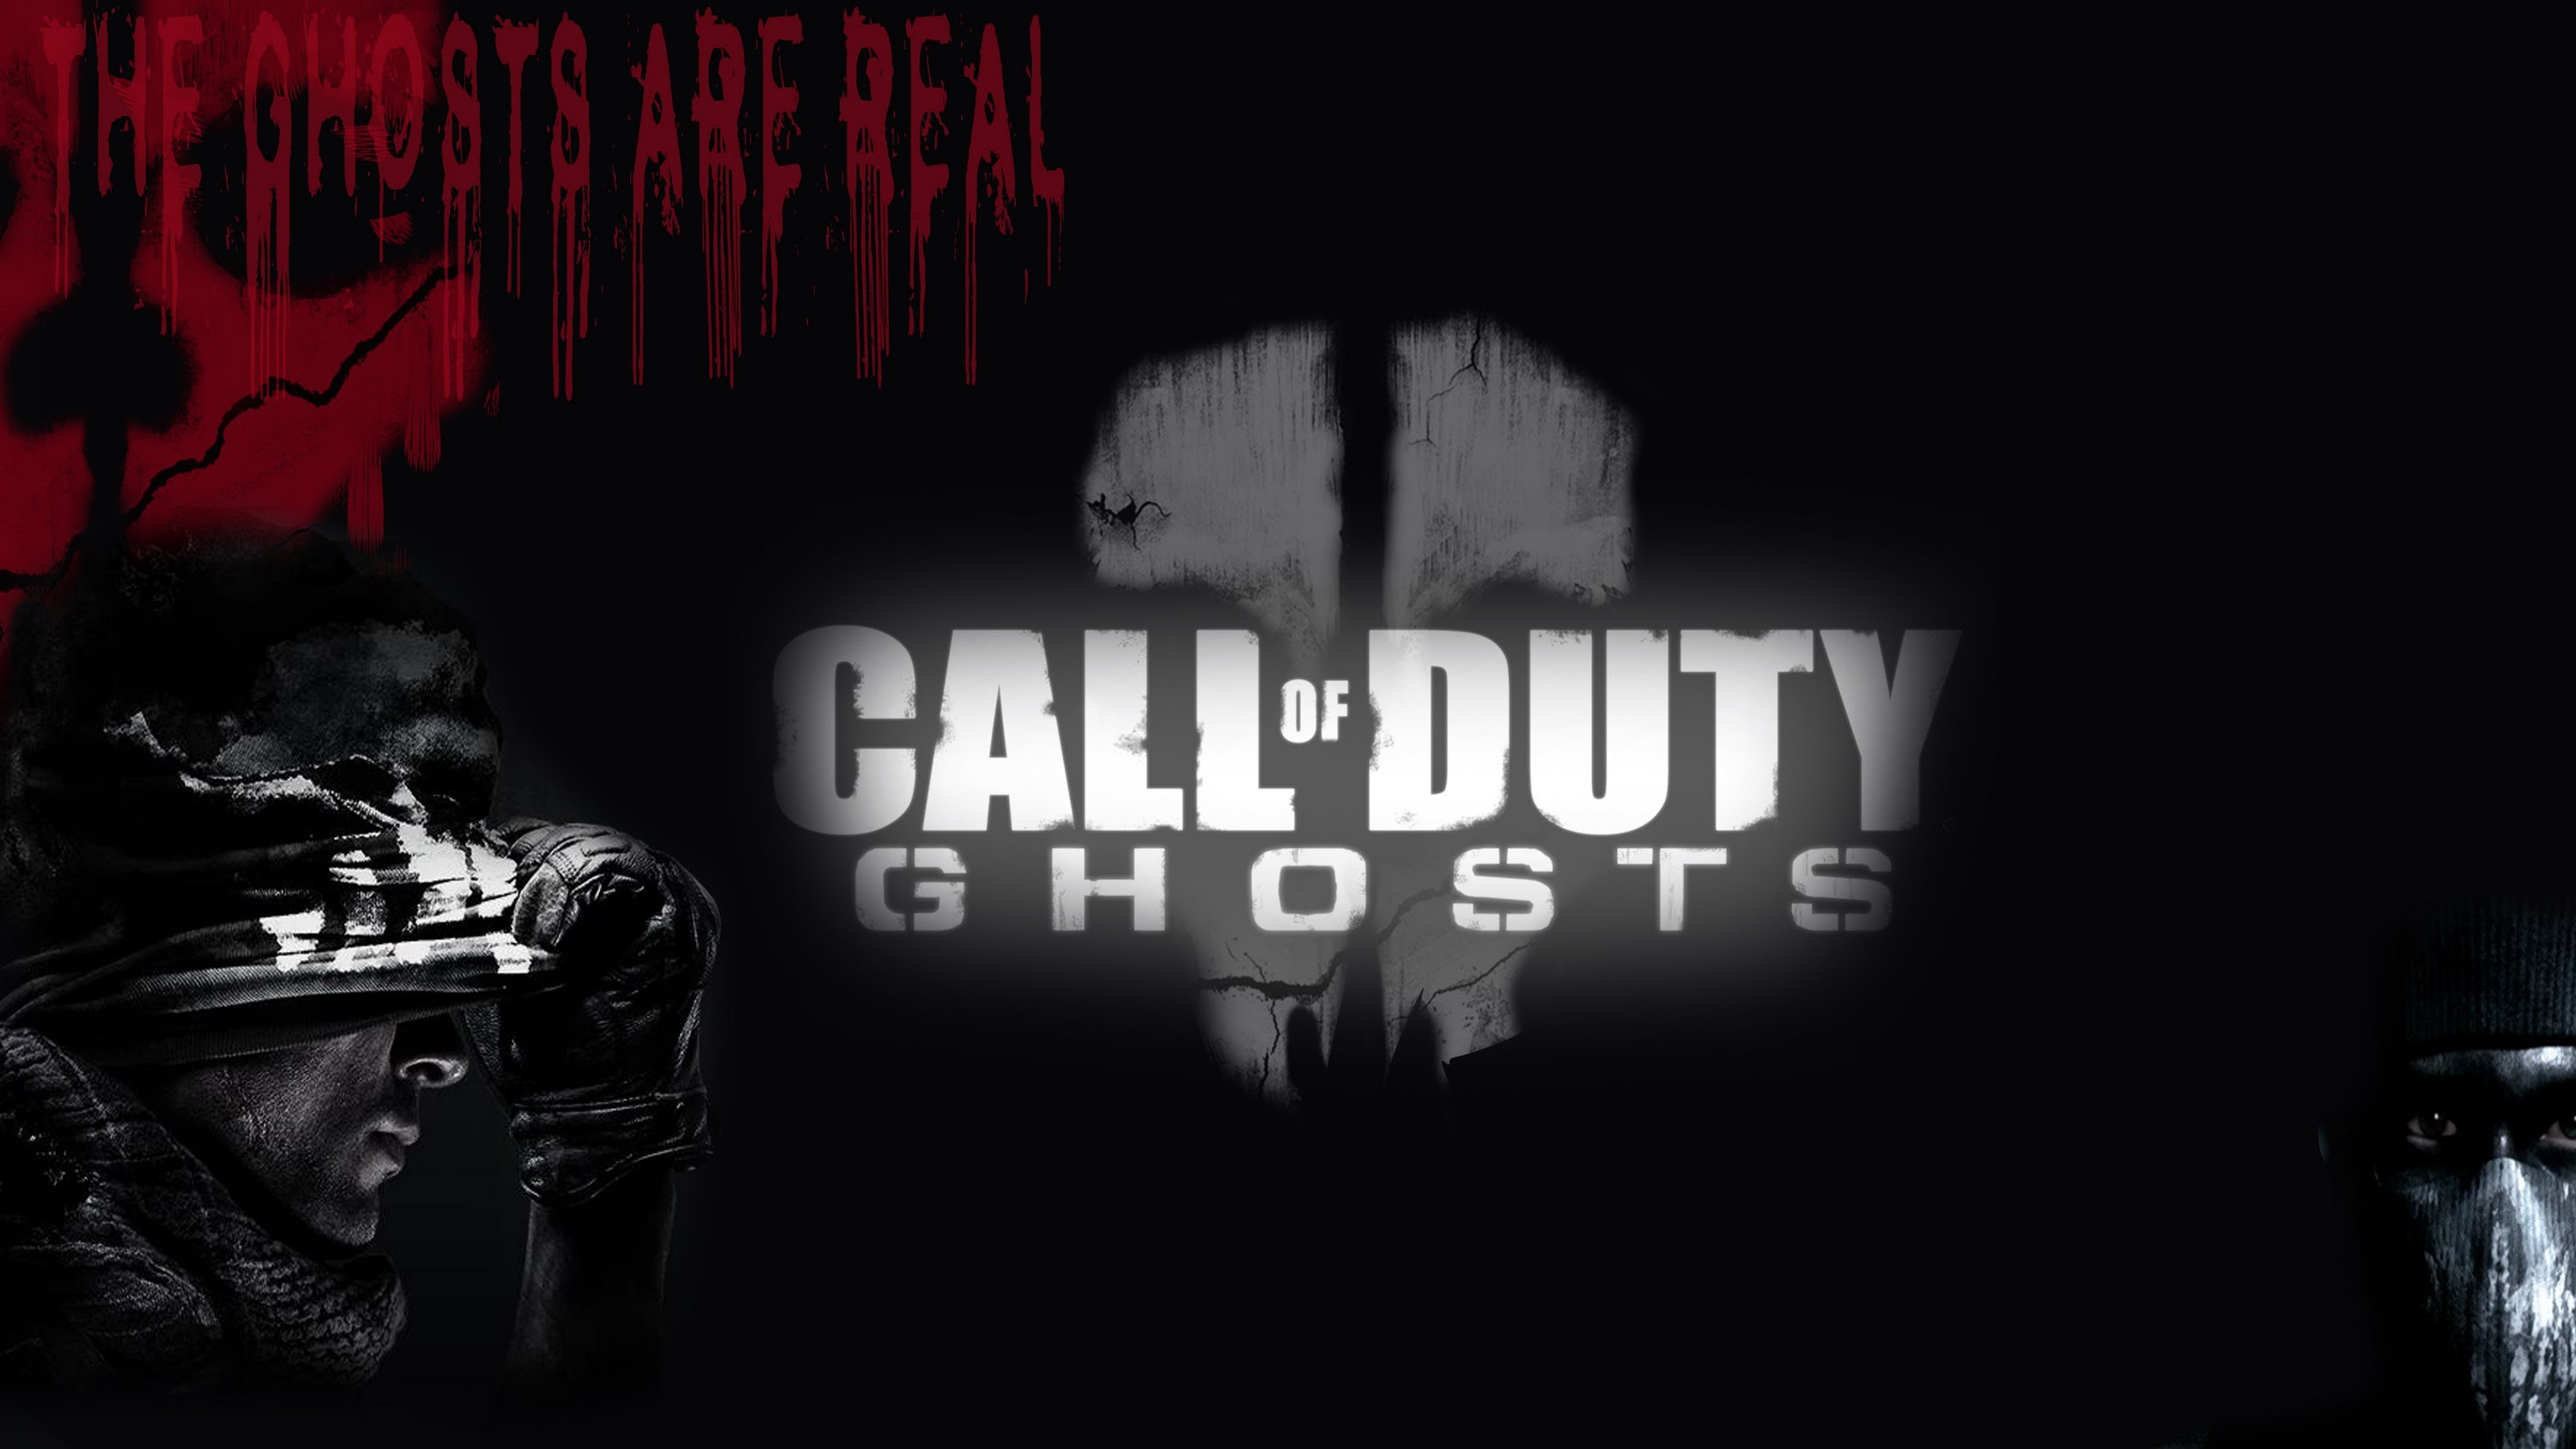 Free Download Speedart Cod Ghosts Youtube Wallpaper 3000x1688 Full